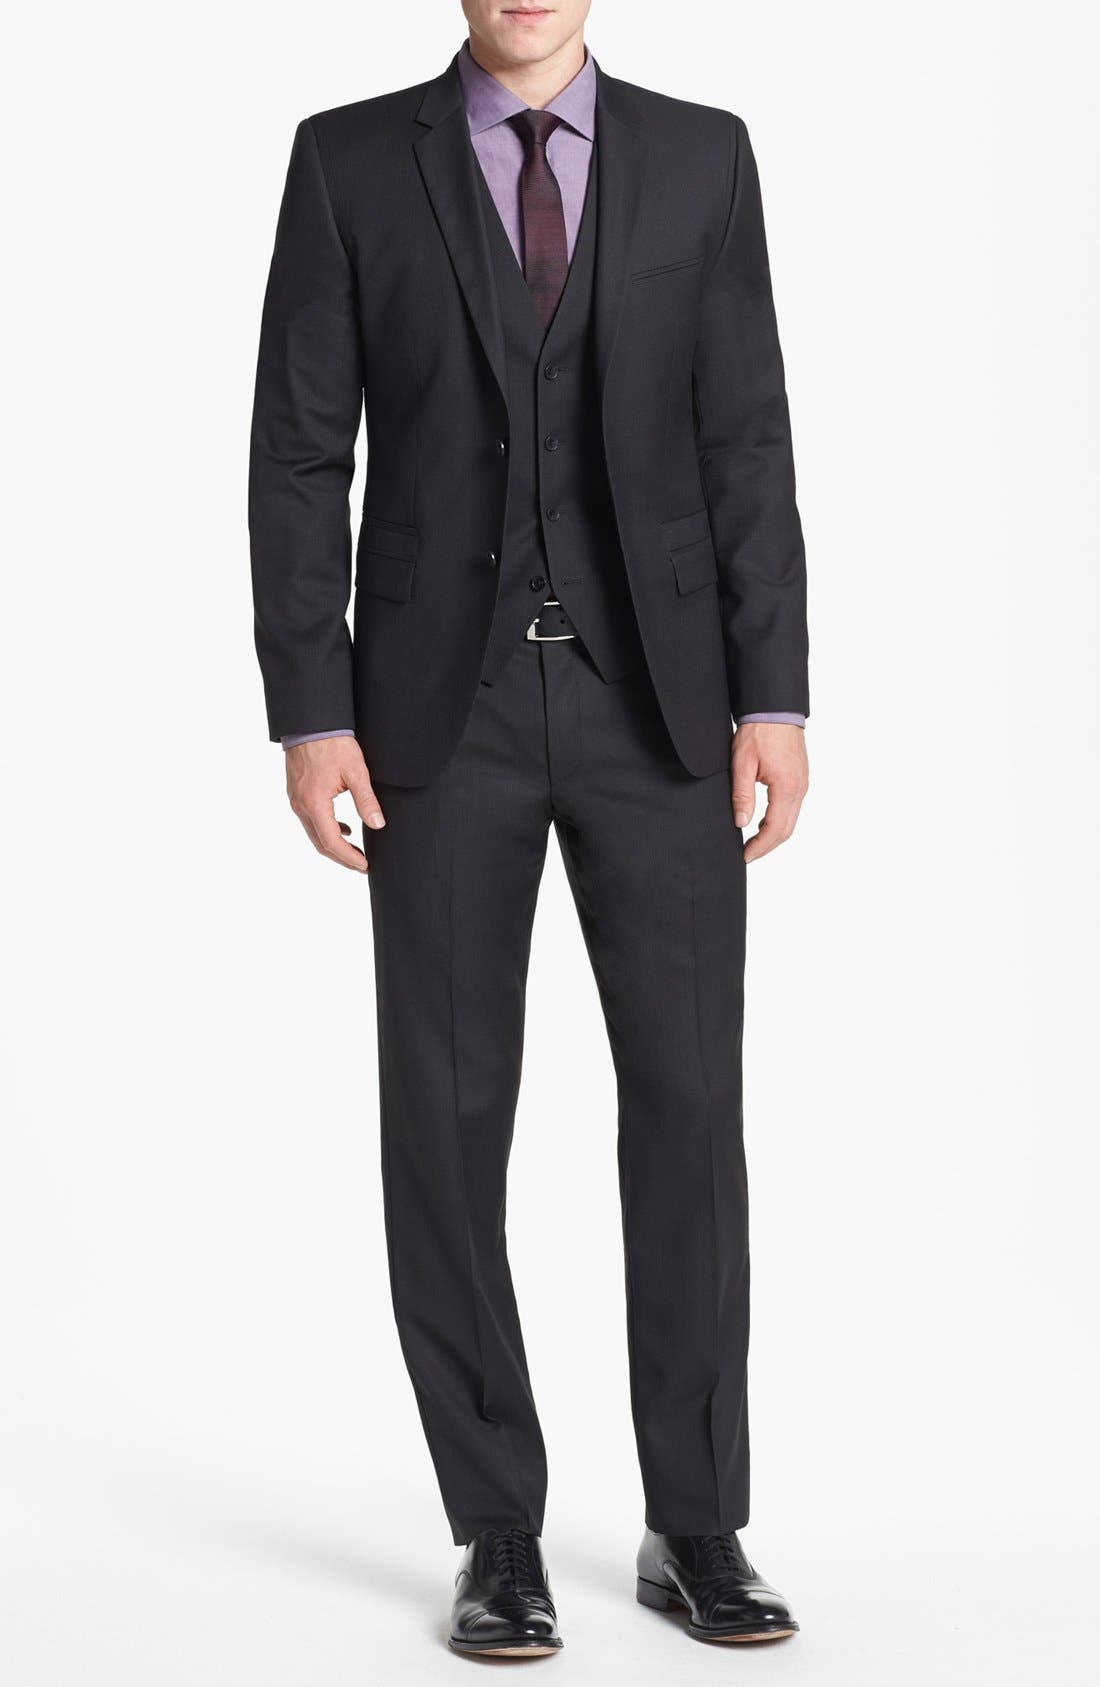 Alternate Image 1 Selected - HUGO 'Arill/Wilm/Heven' Trim Fit Three-Piece Suit